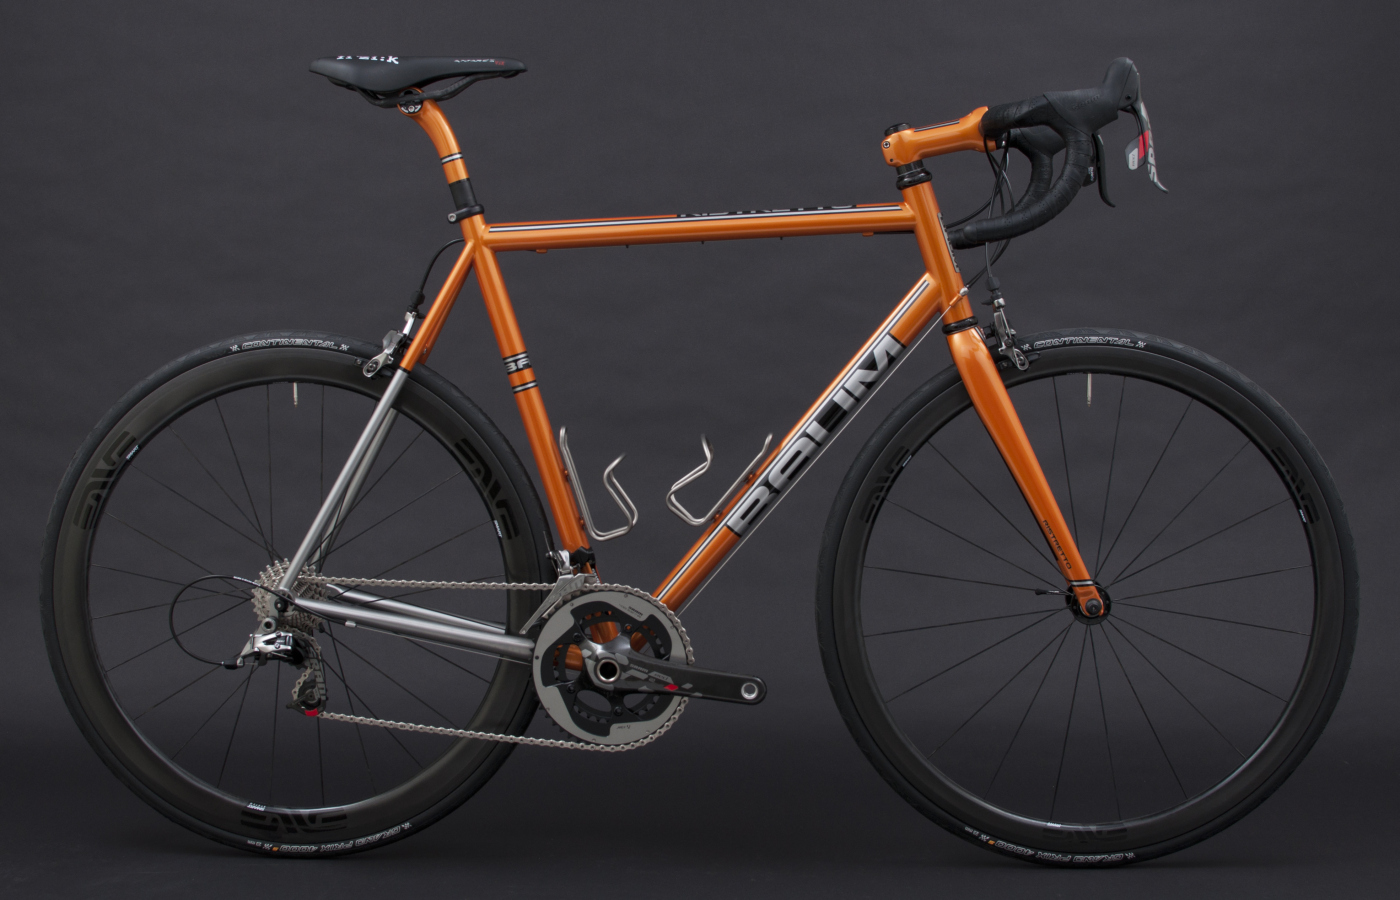 Baum Ristretto orange sram red 2014neuroticarnutzCaletti orange dura ace 2015